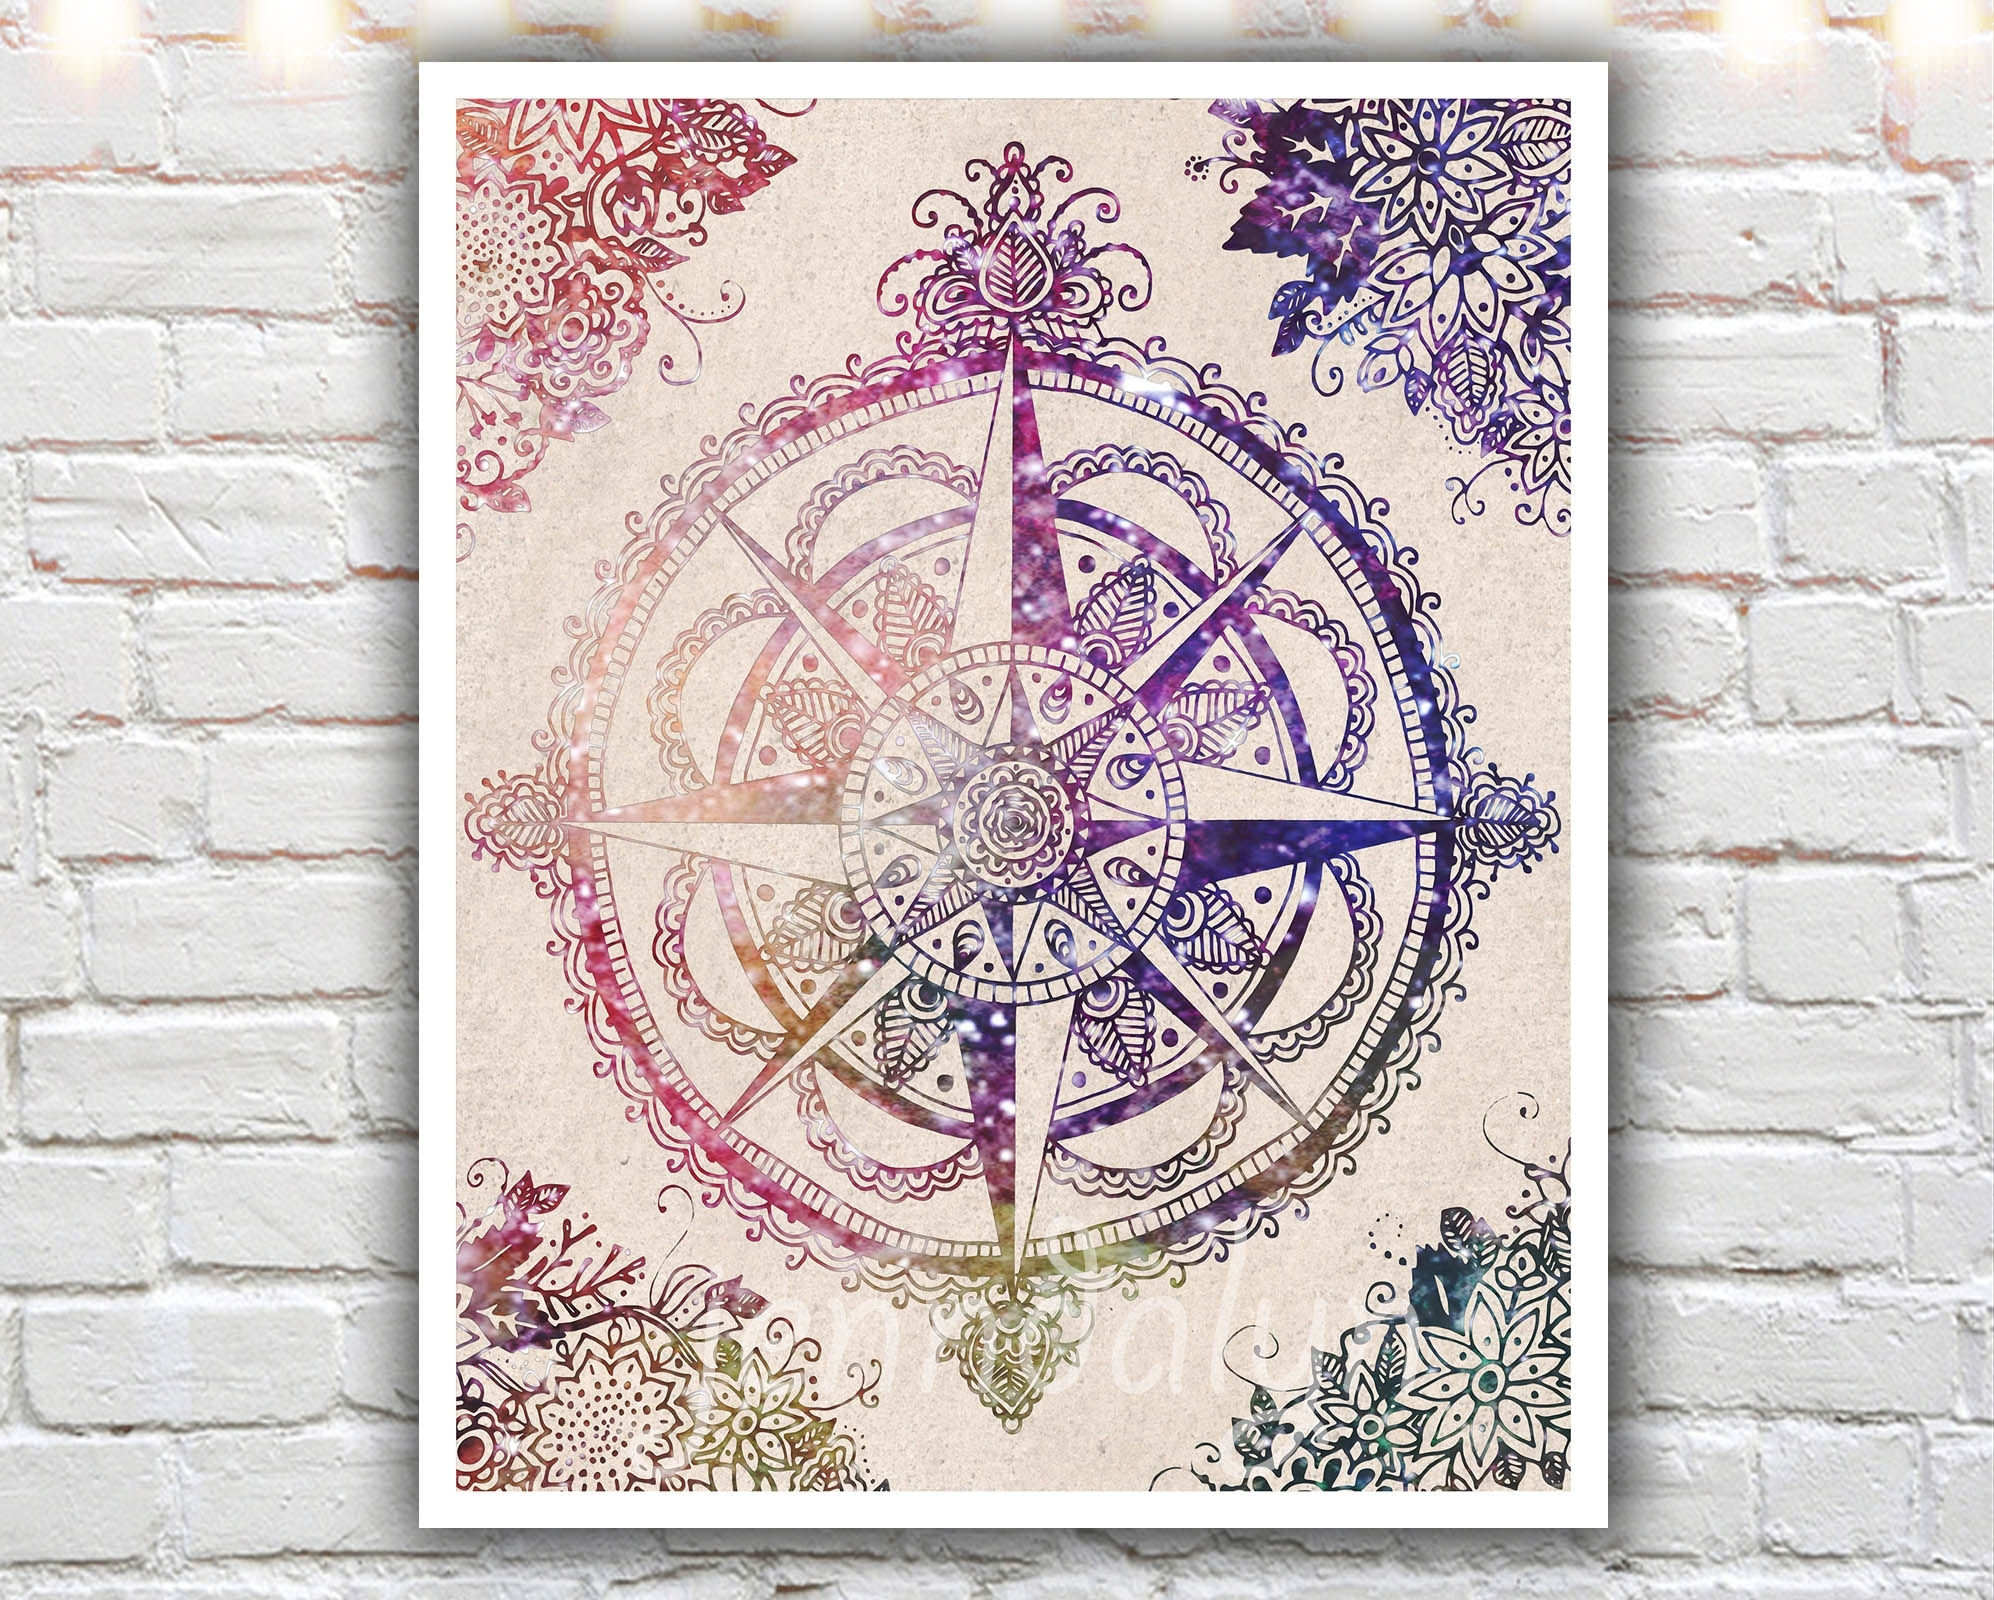 Voyager Ii - 16 X 20 Paper Print, Large Wall Art, Compass Rose with Henna Wall Art (Image 18 of 20)